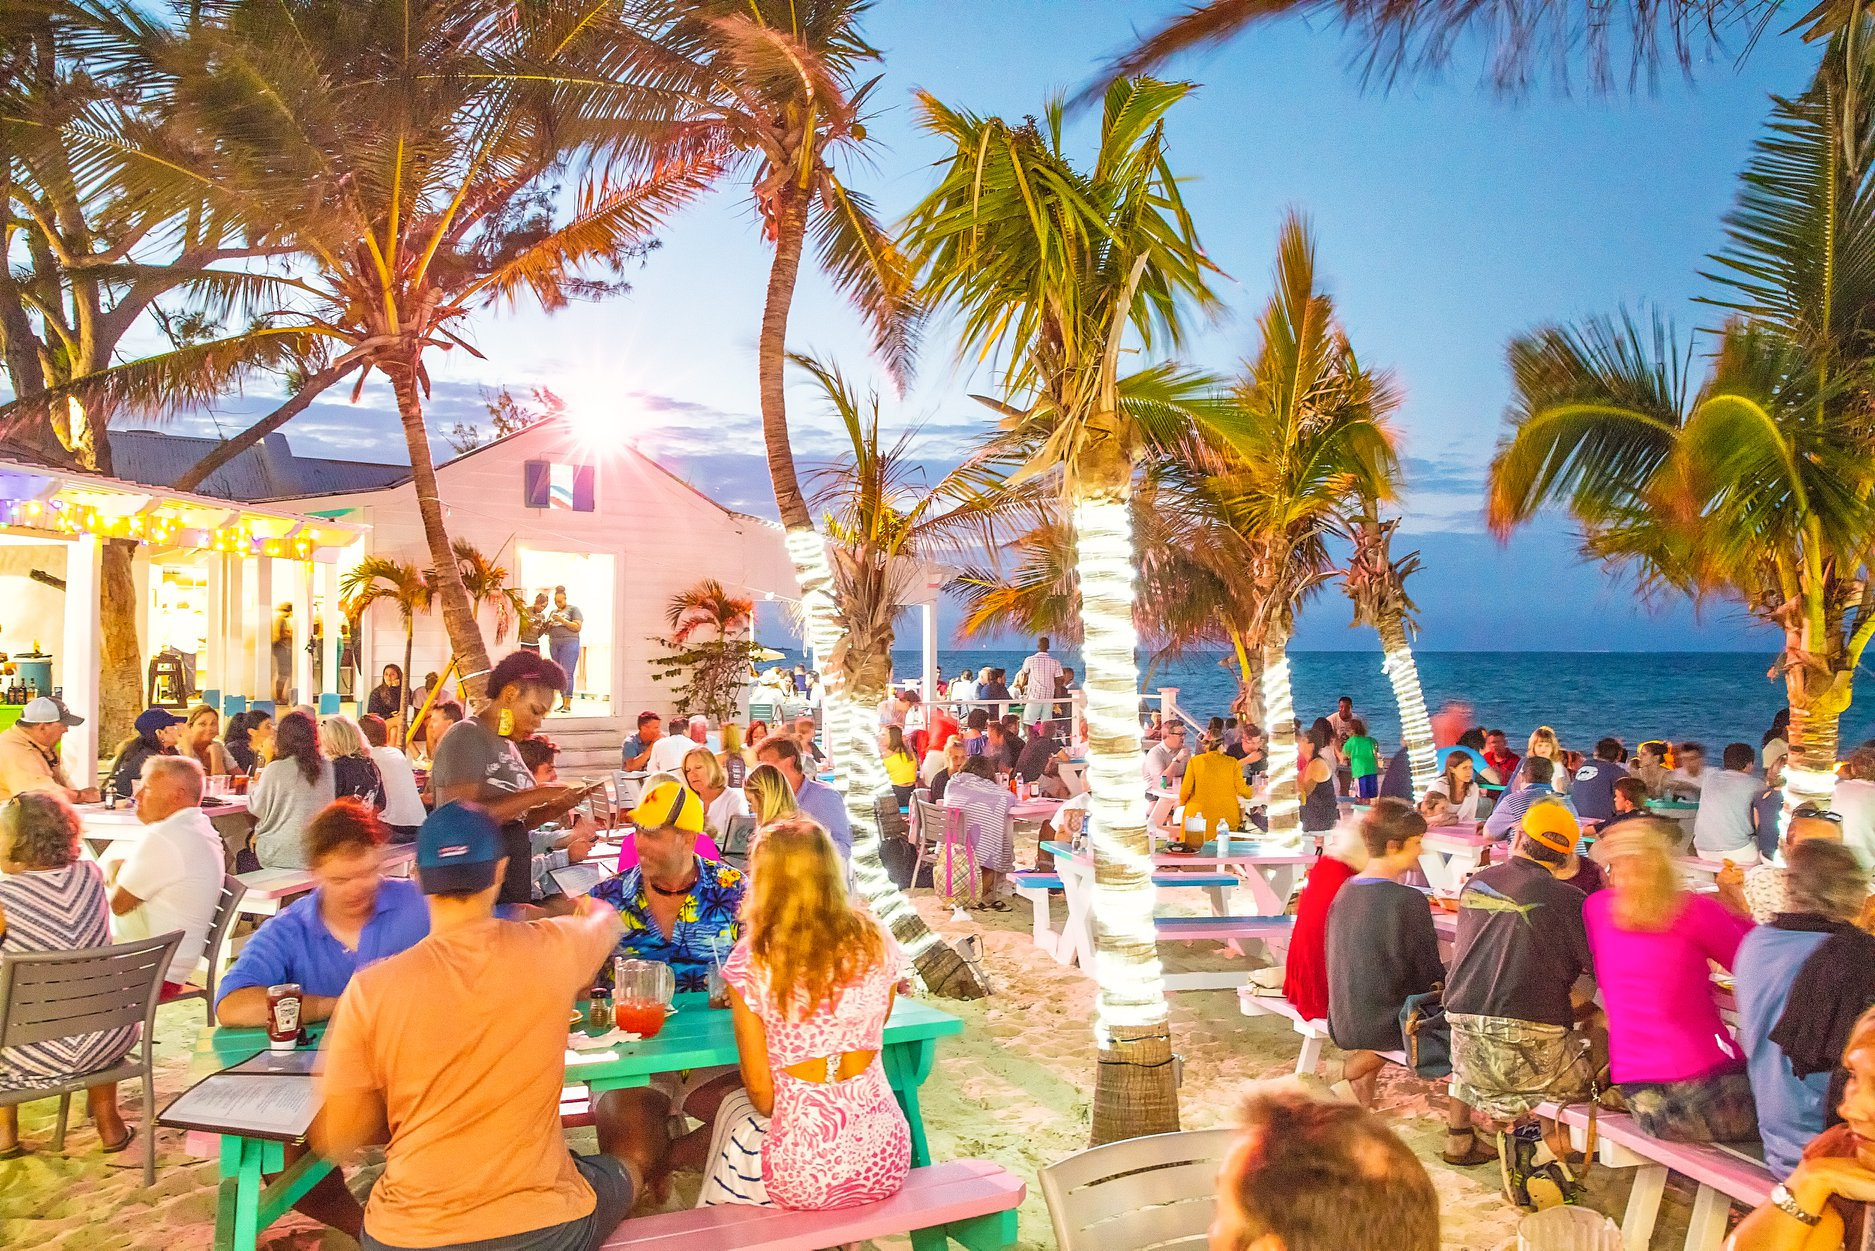 The Honeymooners Guide to Dining in the Caribbean